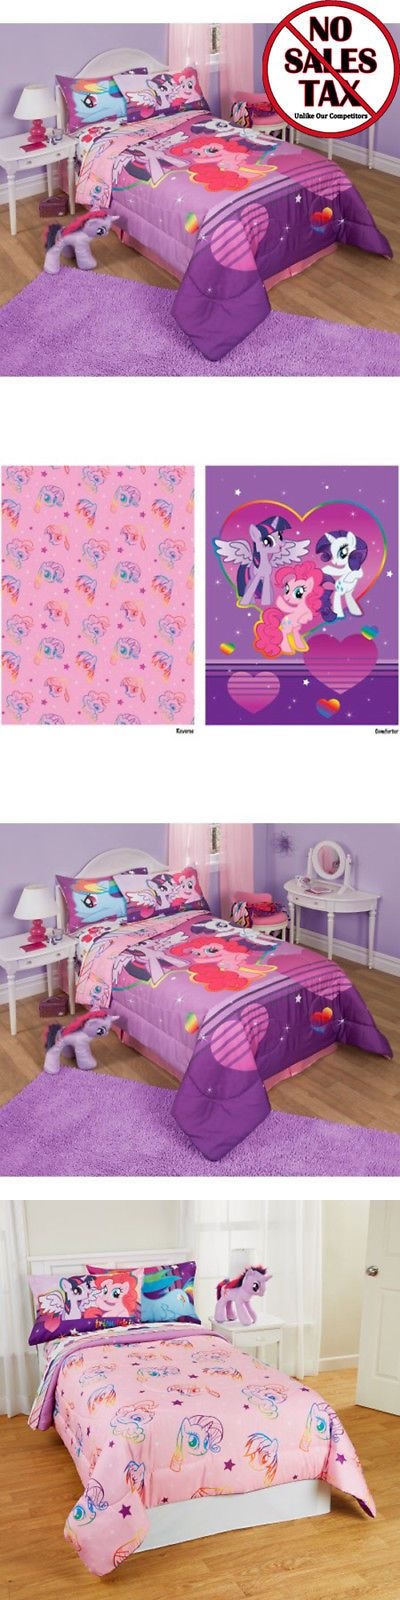 Kids Bedding: My Little Pony Twin Full Bed Comforter And Sheet Set Girls Bedding New -> BUY IT NOW ONLY: $47.99 on eBay!